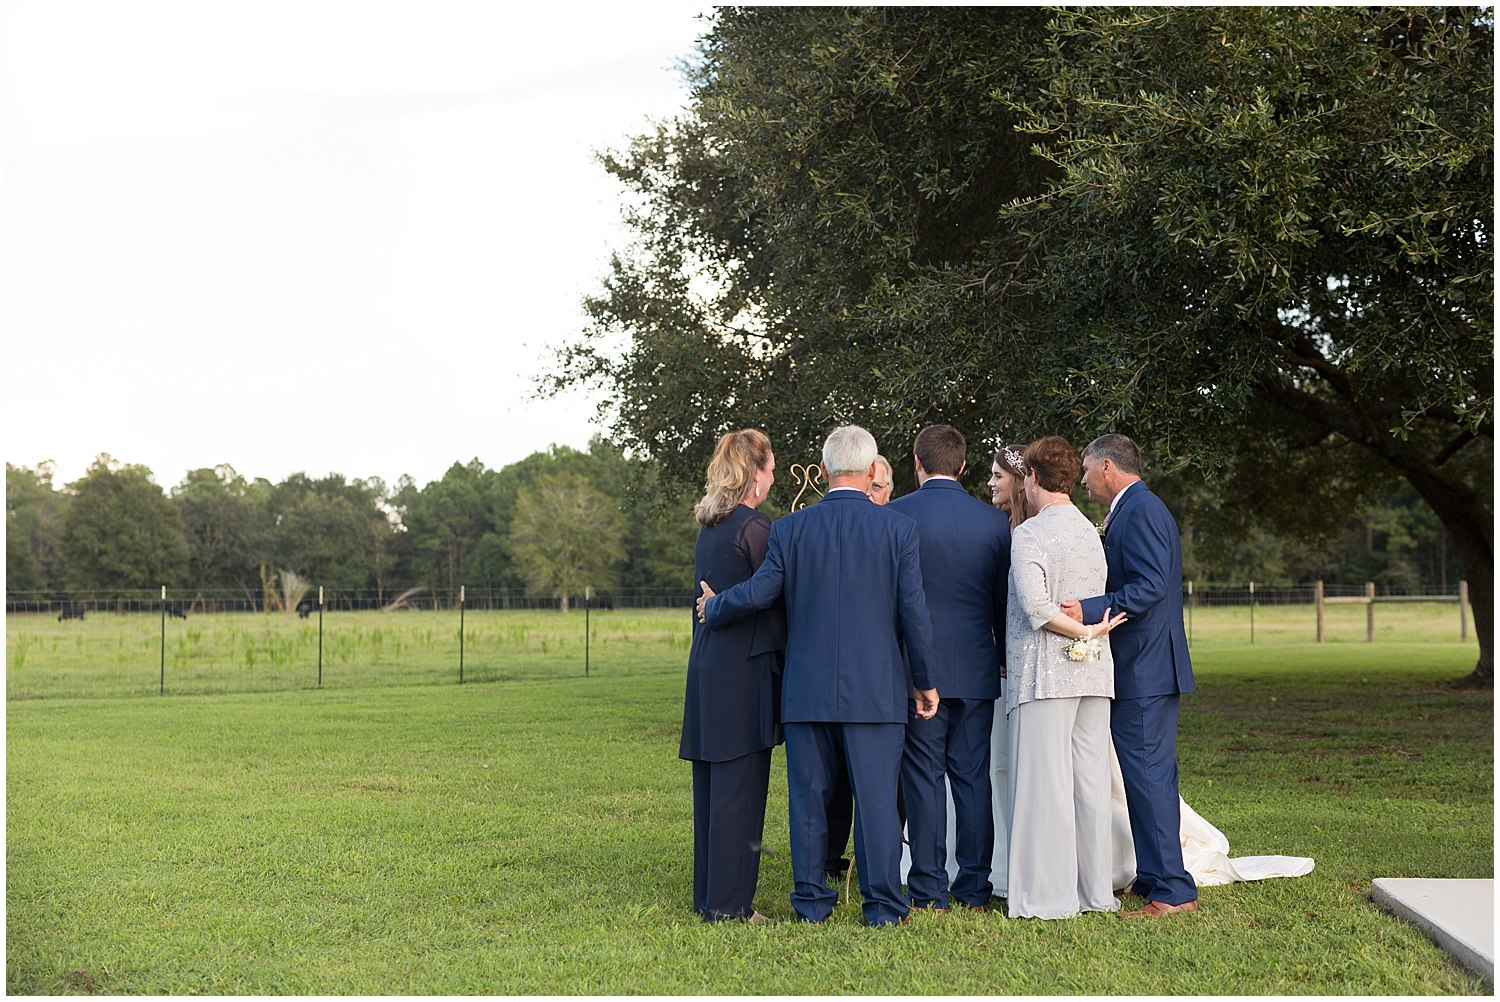 family praying at wedding ceremony